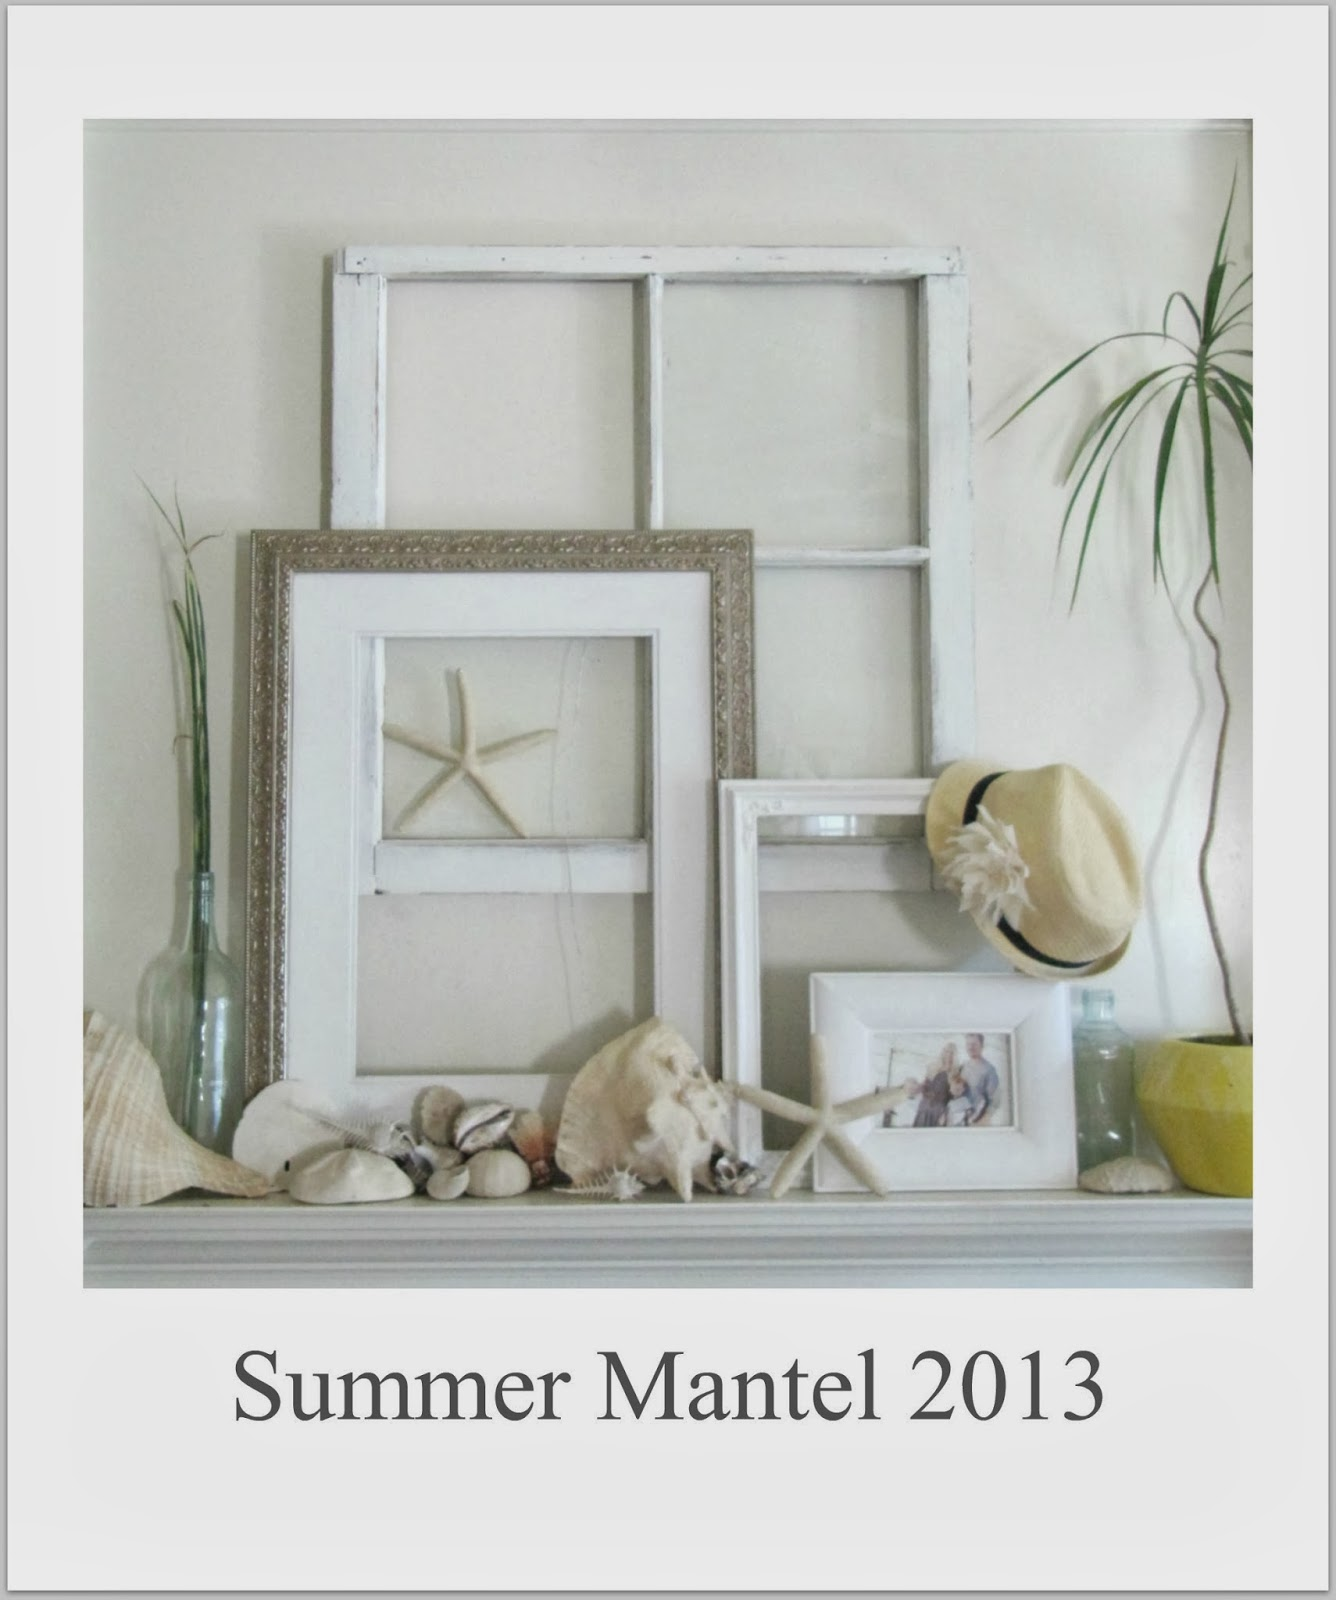 http://thewickerhouse.blogspot.com/2013/06/my-summer-mantle-2013.html